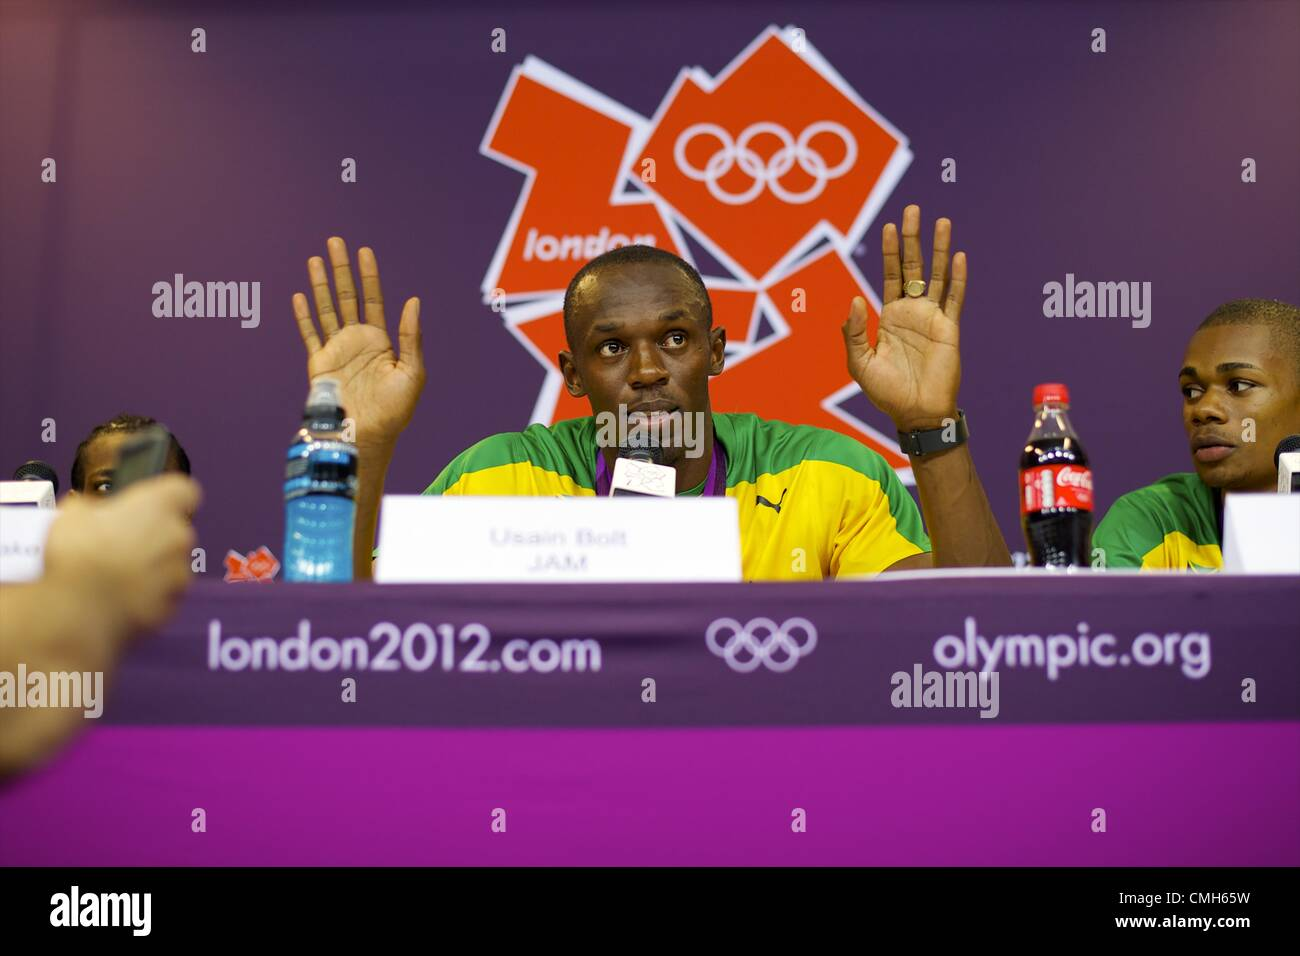 Aug. 9, 2012 - London, England, United Kingdom - Gold medal winner Jamaican sprinter USAIN BOLT claims 'I am - Stock Image